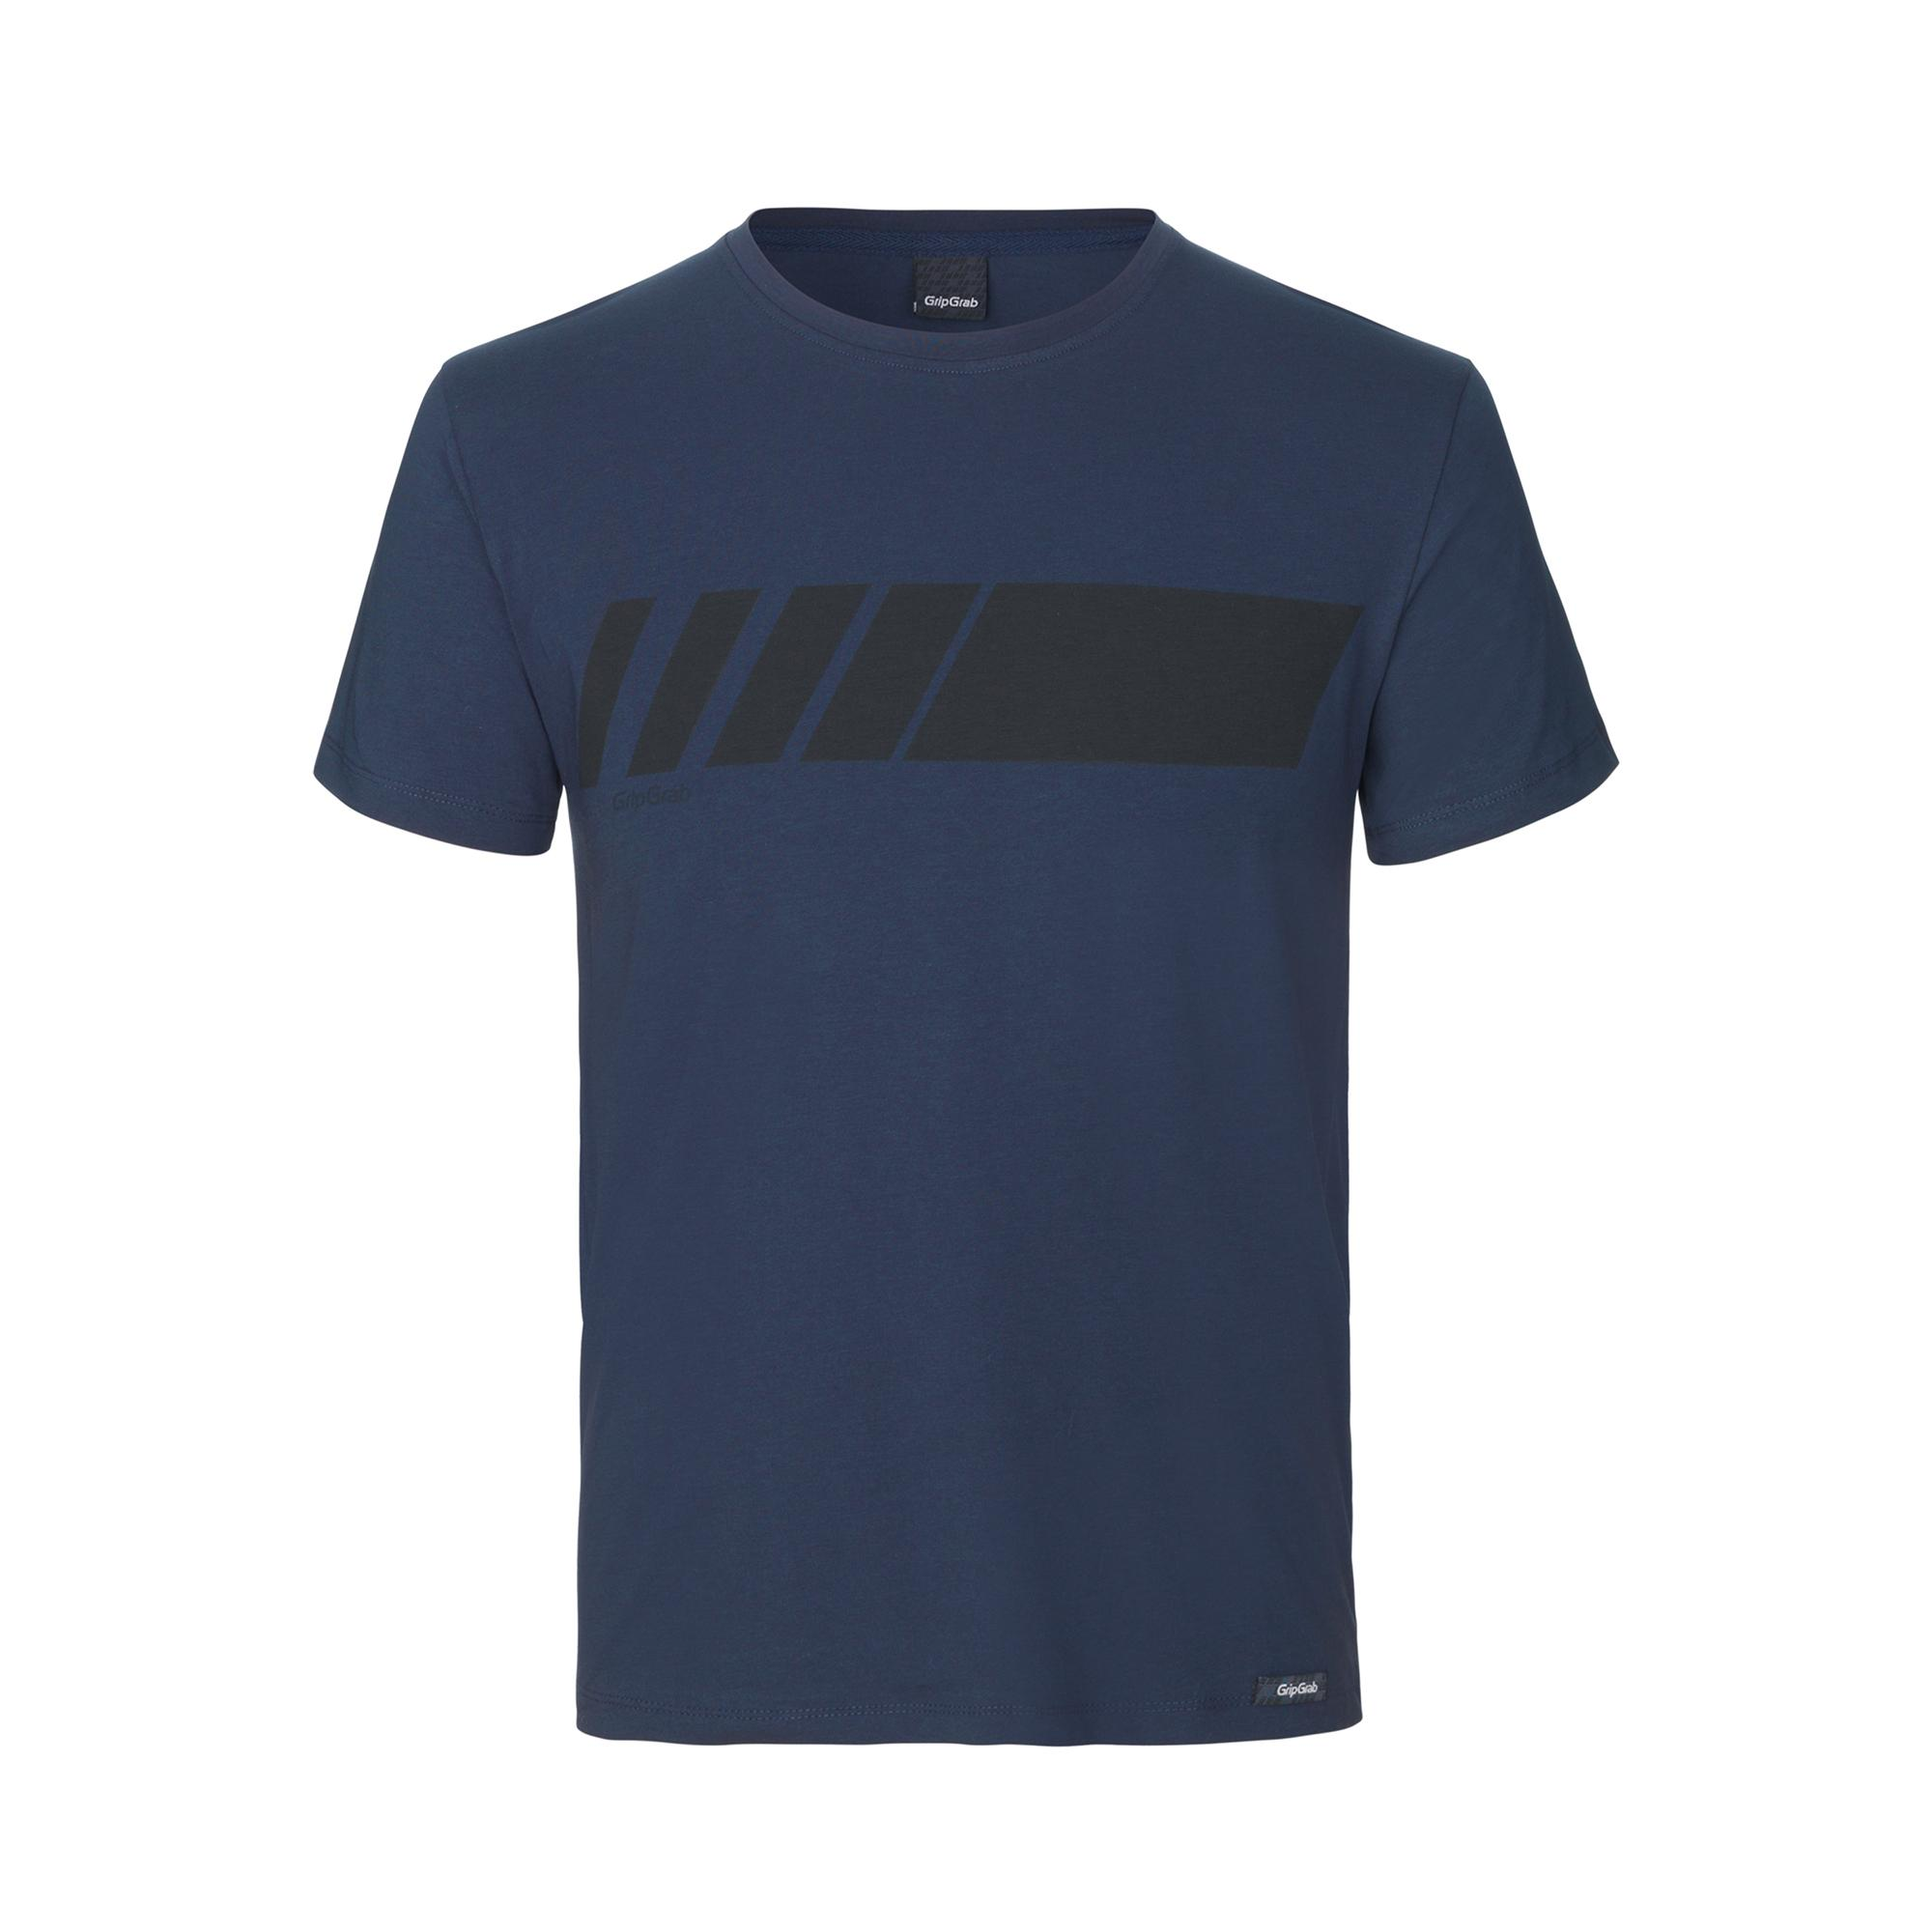 GripGrab Casual T-Shirt Unisex Blauw - Racing Stripe Short Sleeve Organic Cotton T-Shirt Navy